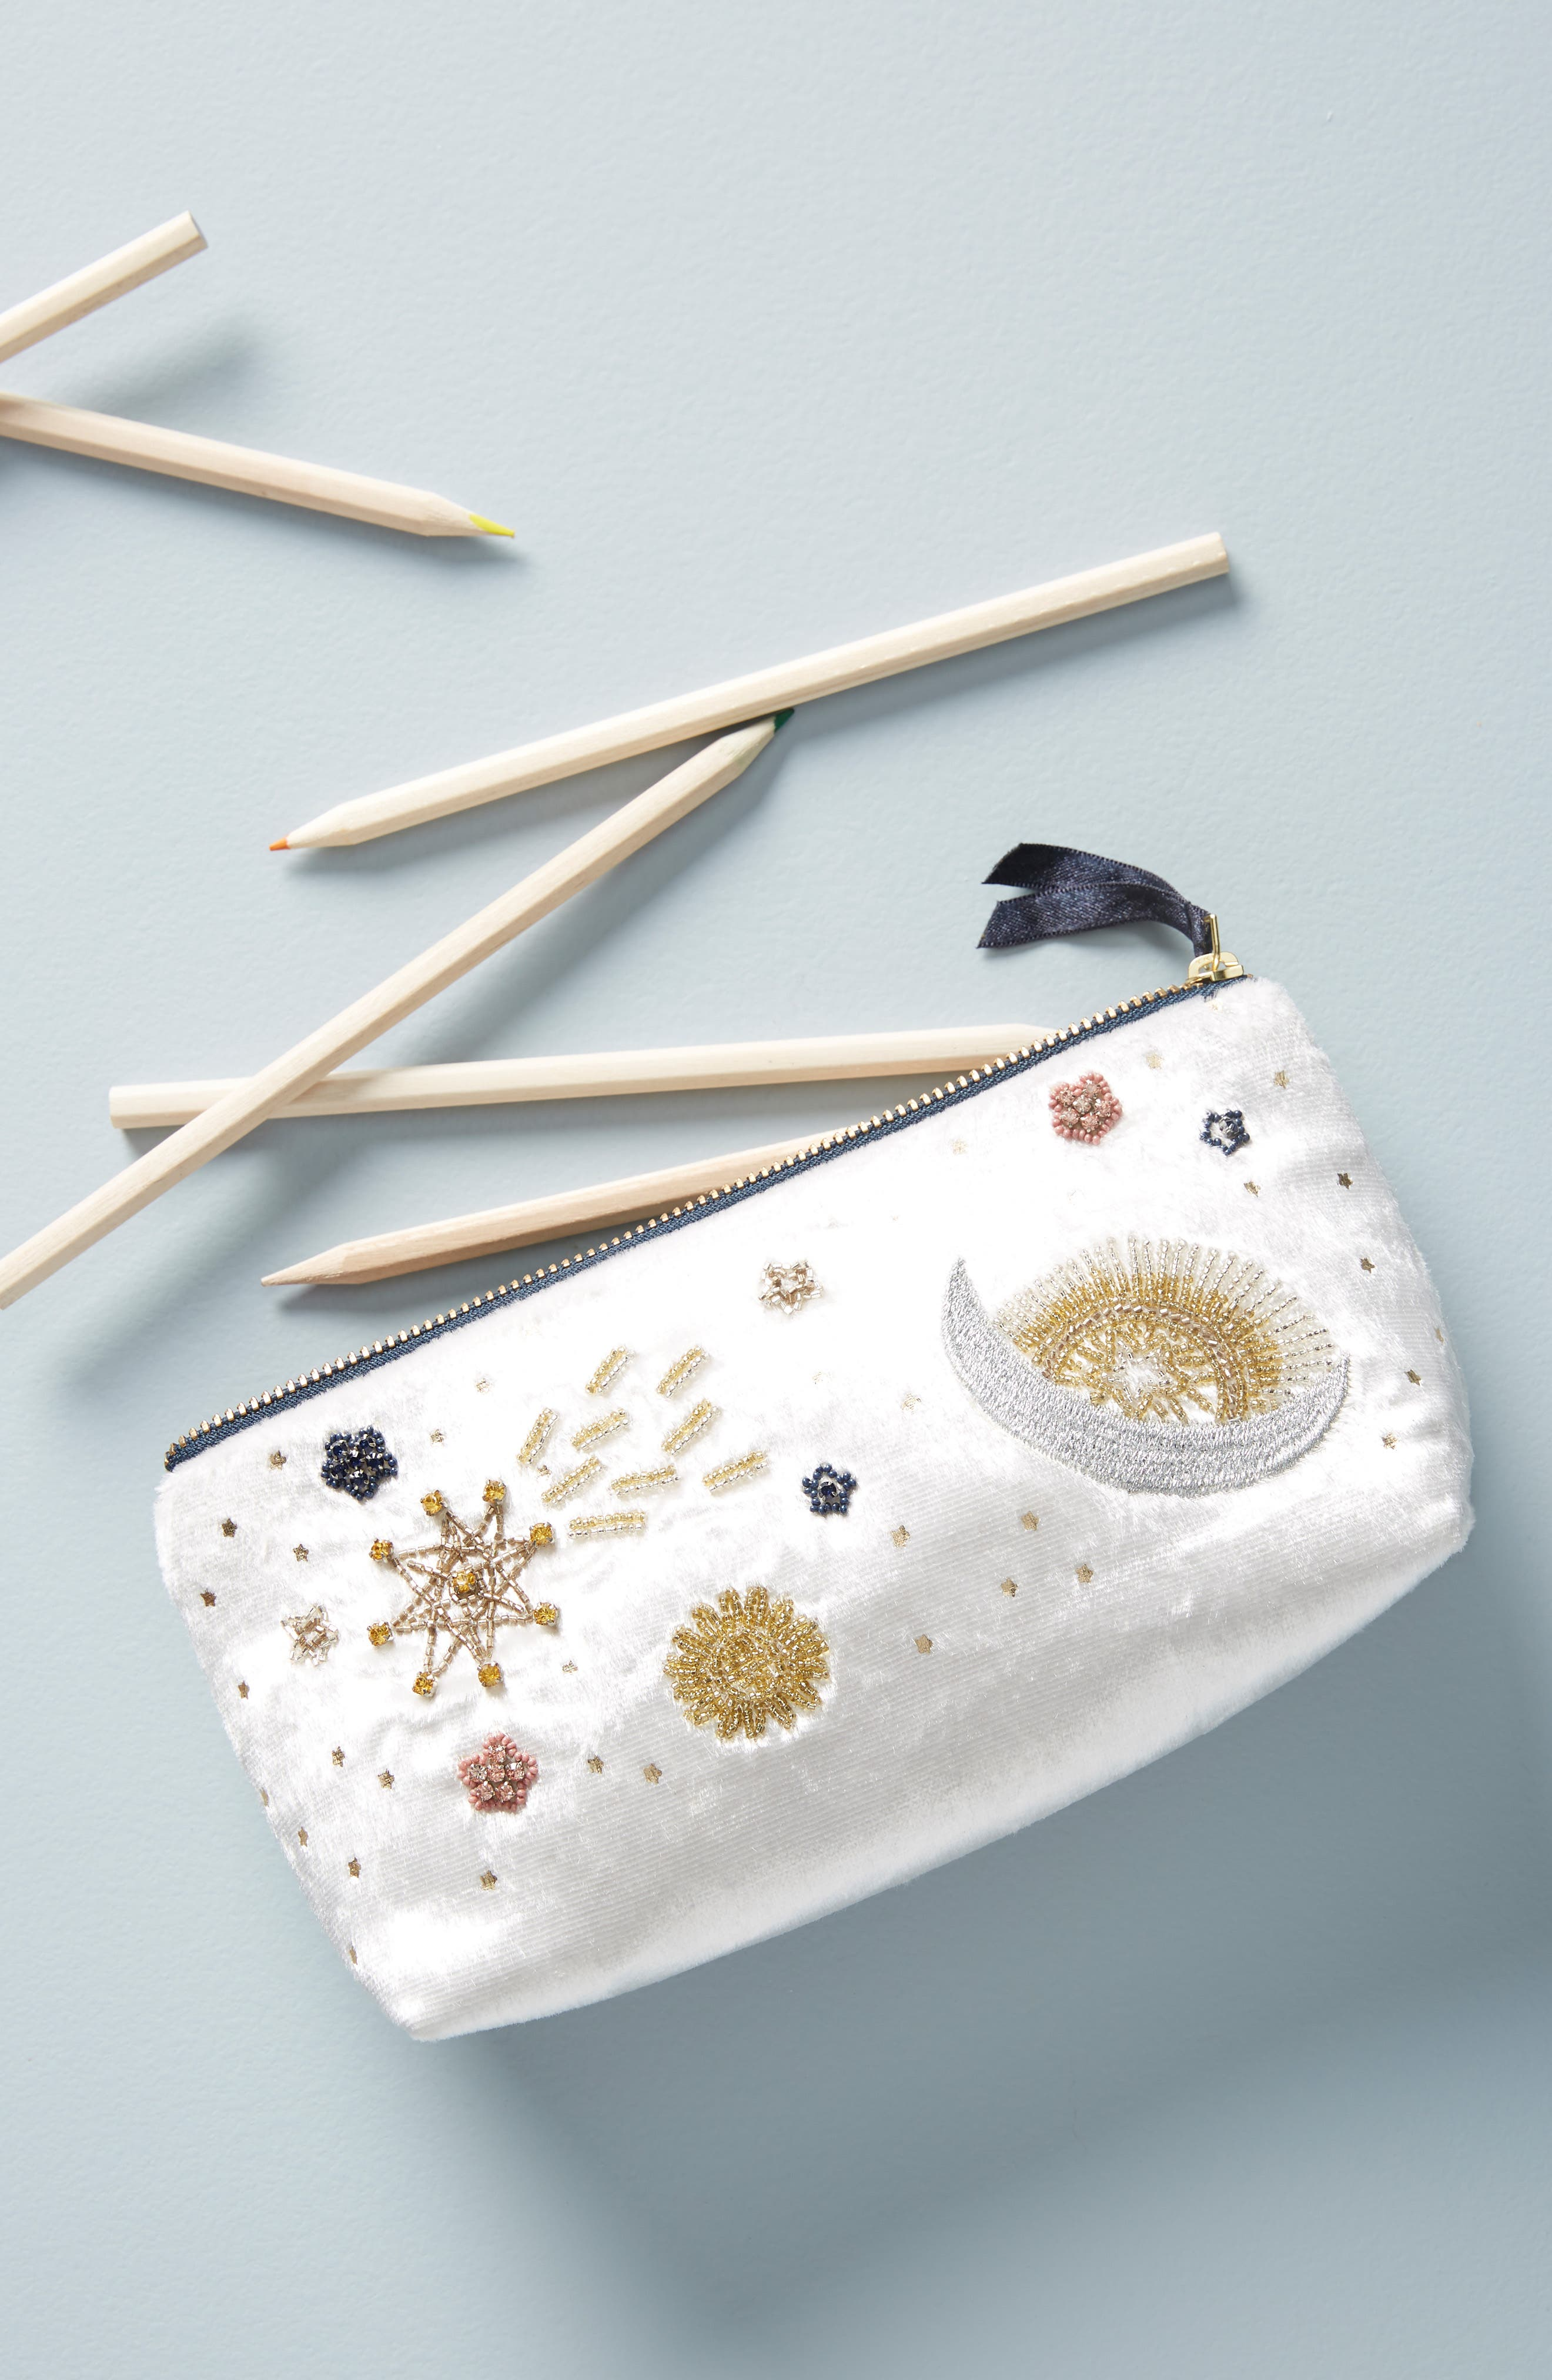 Claire Embellished Pencil Pouch,                             Main thumbnail 1, color,                             IVORY